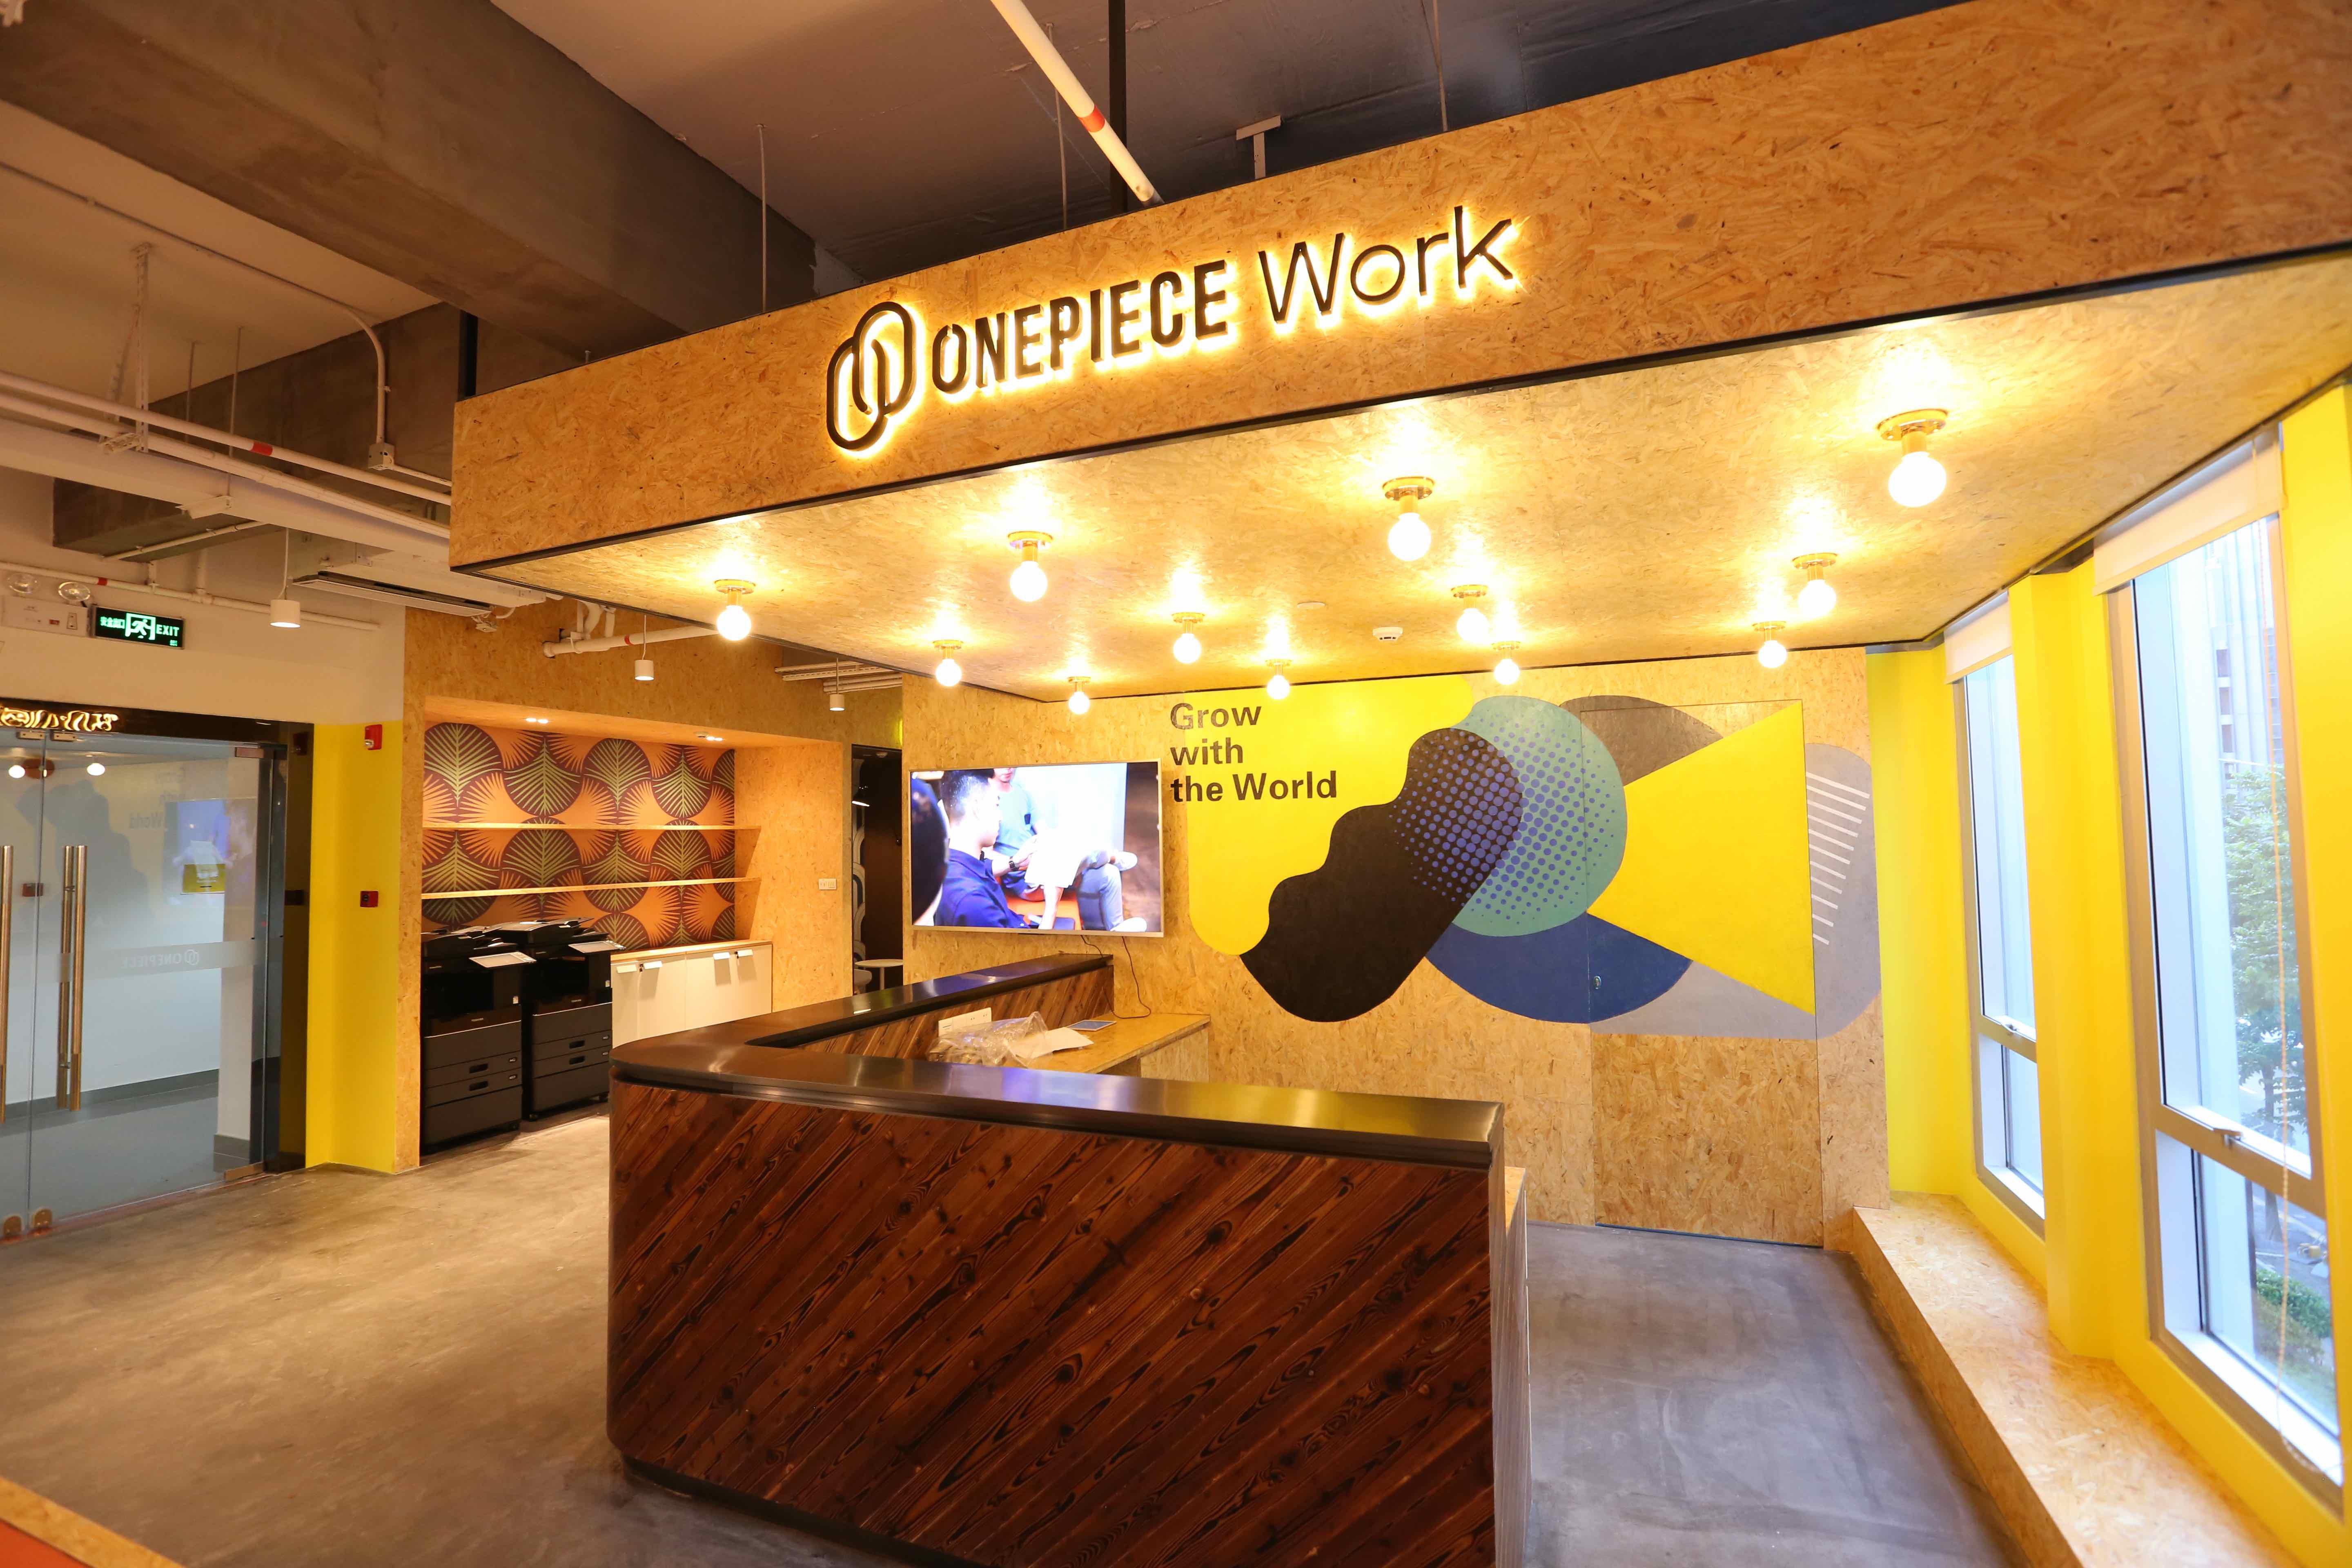 OnePiece Work Shenzhen location lobby featuring rustic wood finishes, custom light fixtures, and stylized signage